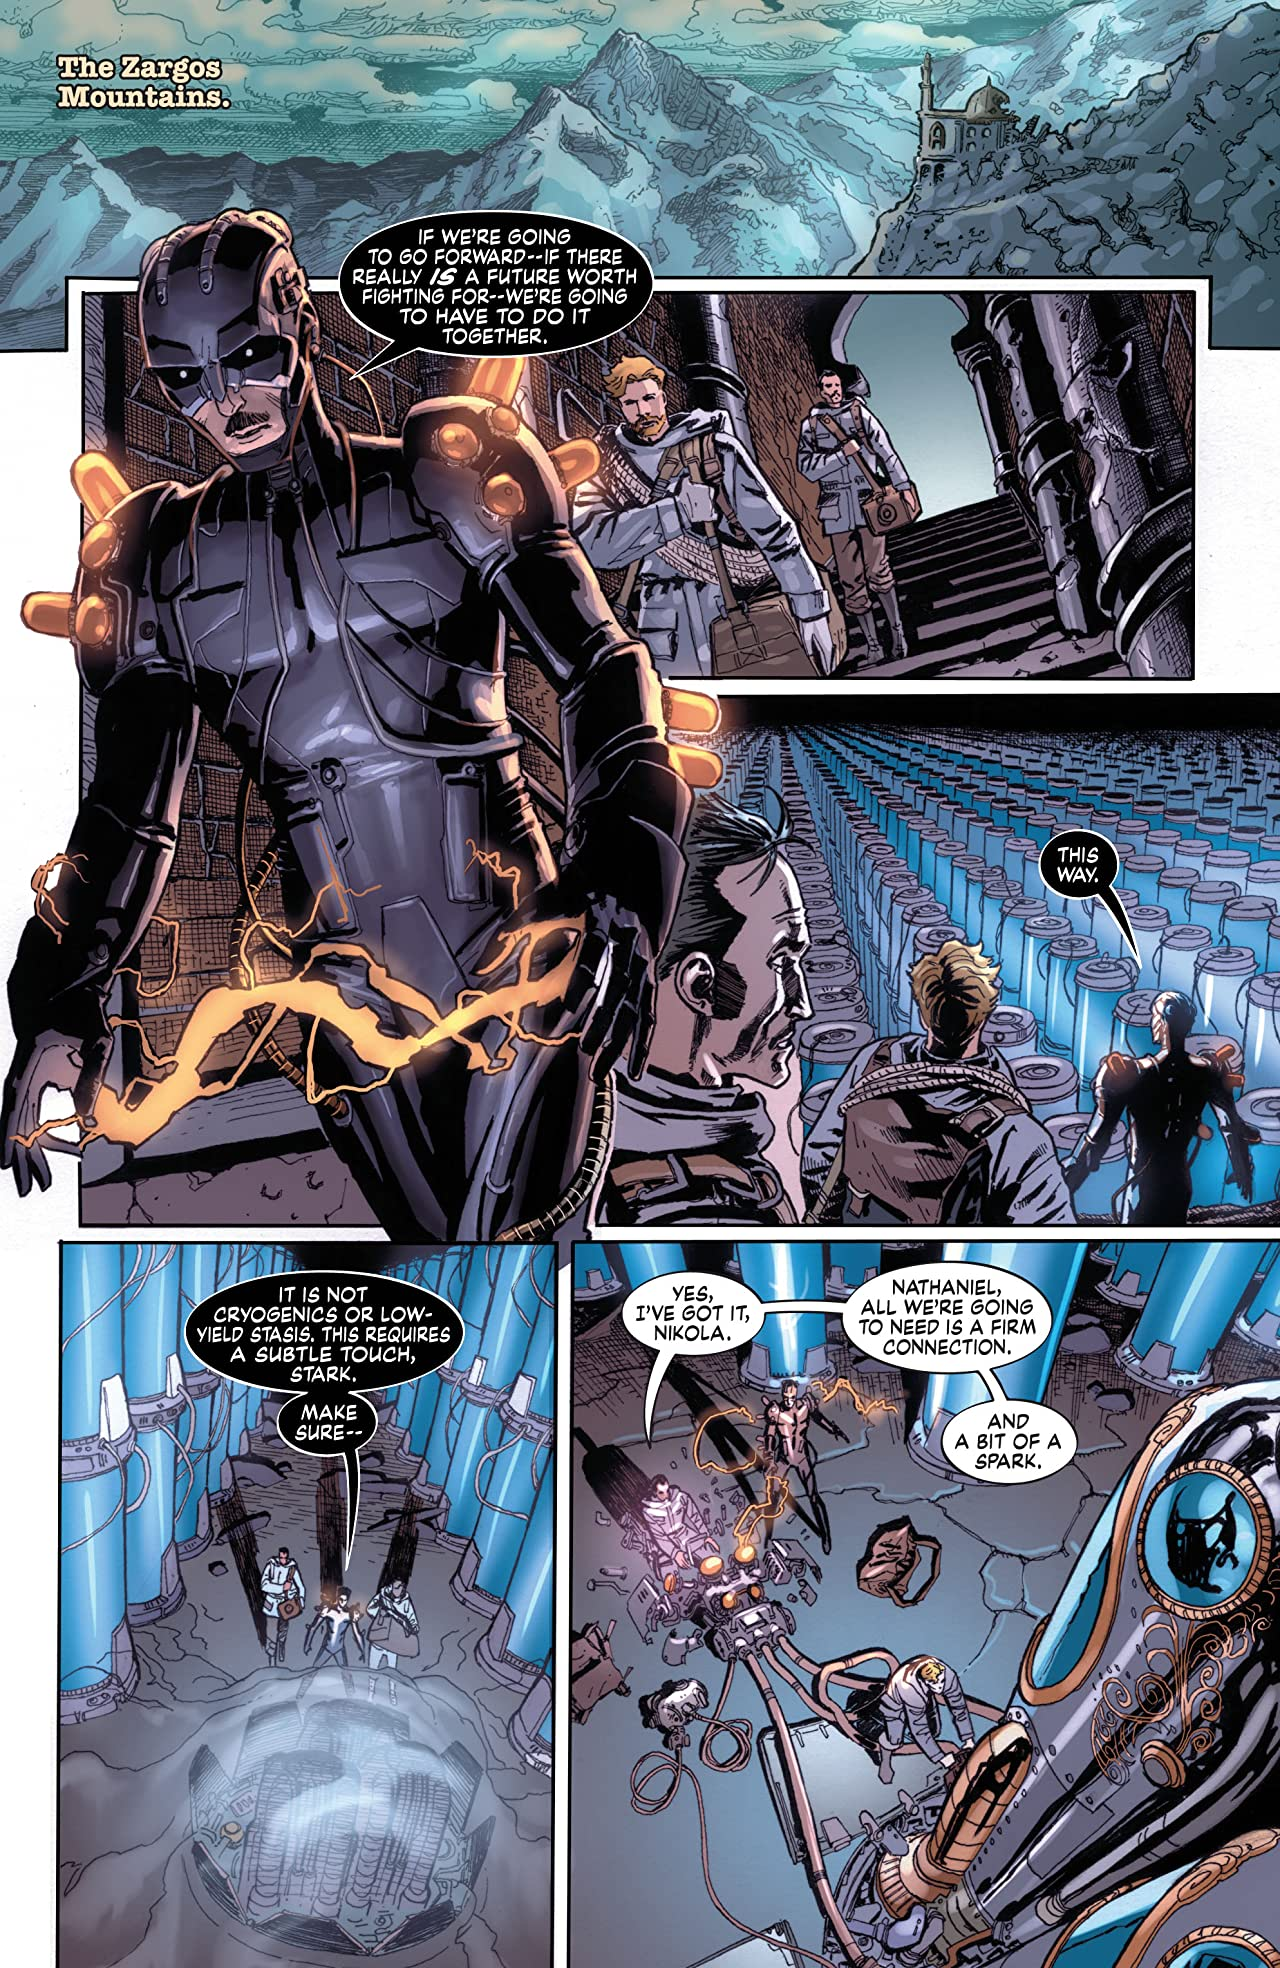 S.H.I.E.L.D. (2011) #4 (of 6)